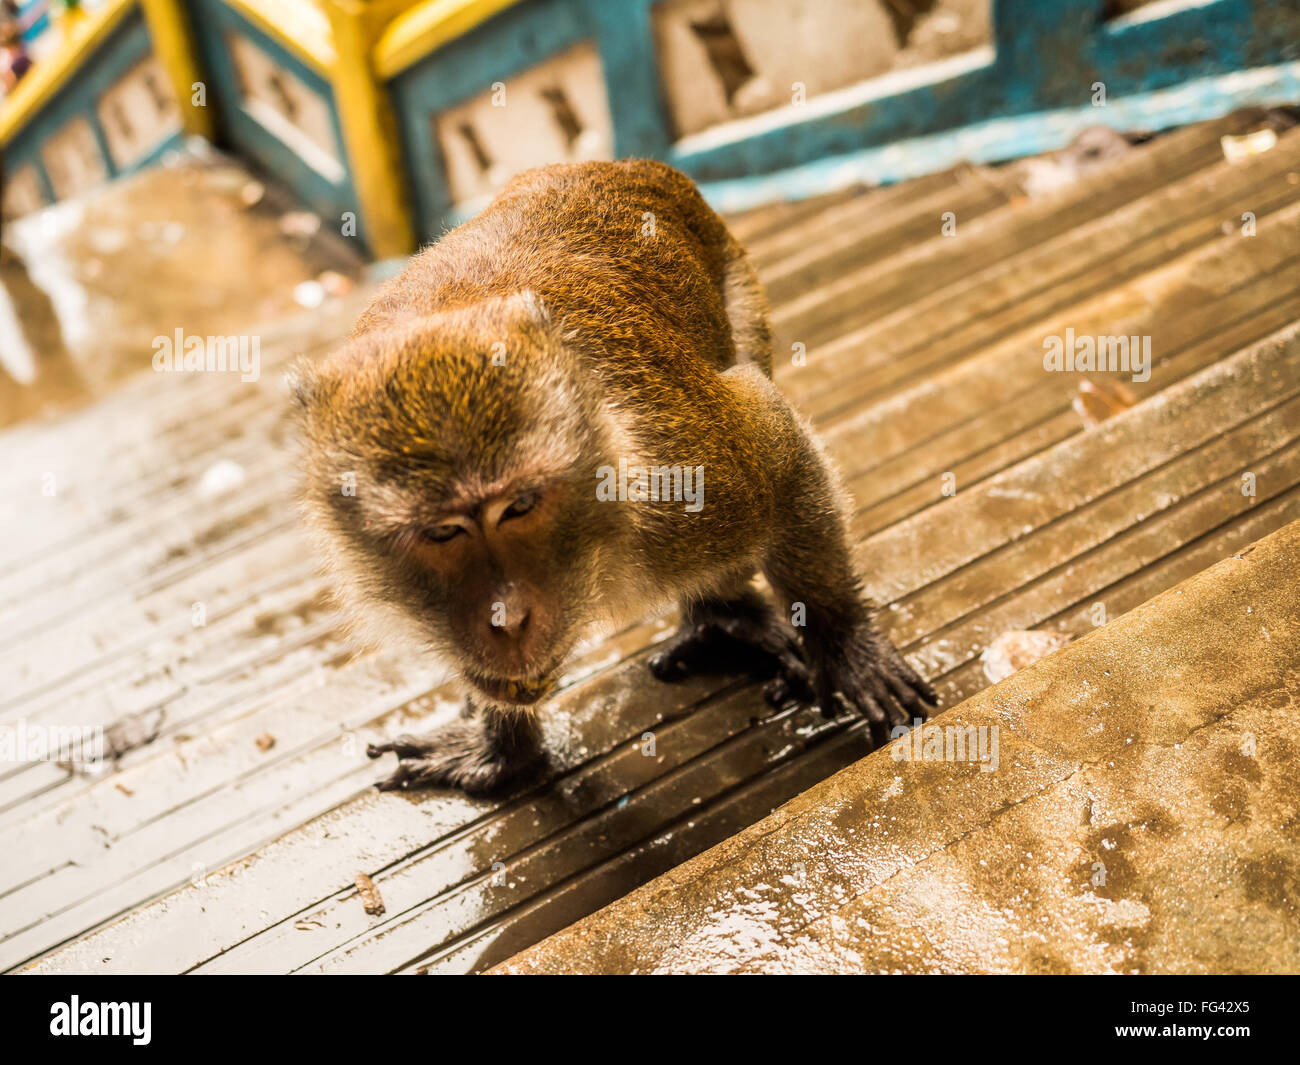 High Angle View Of Monkey On Steps - Stock Image